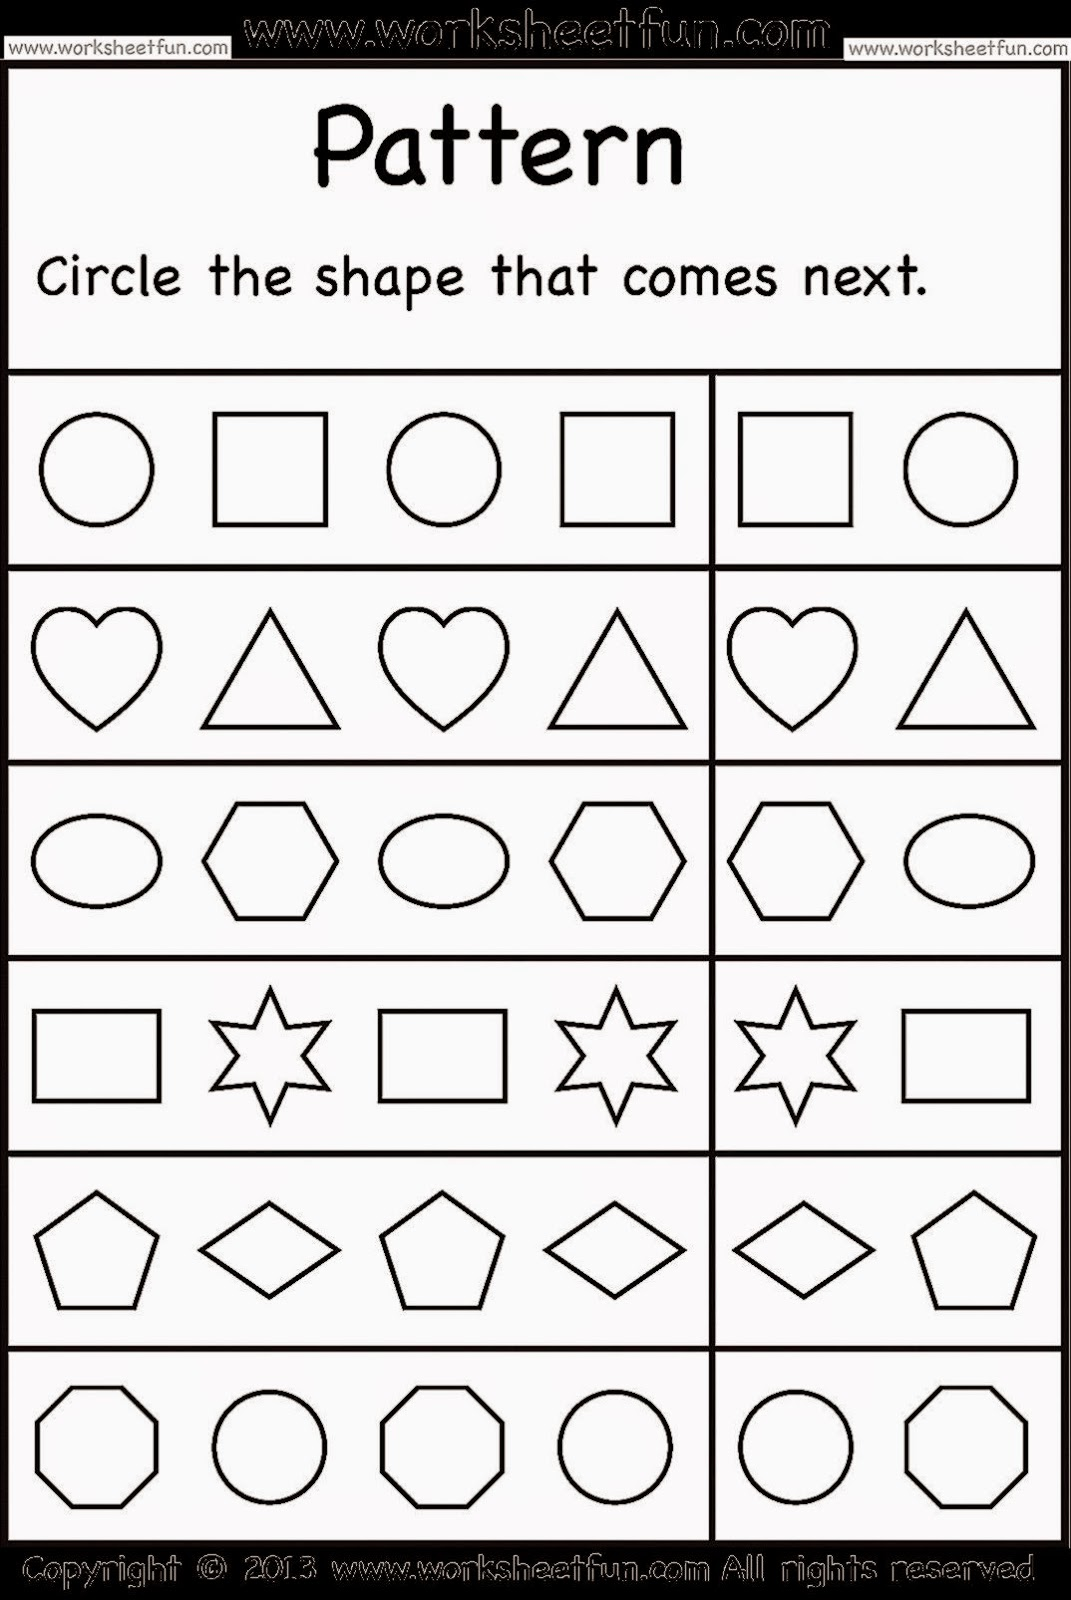 Worksheets Free Kindergarten Worksheets Printable printable kindergarten worksheets for preschool 7 best images of fun free